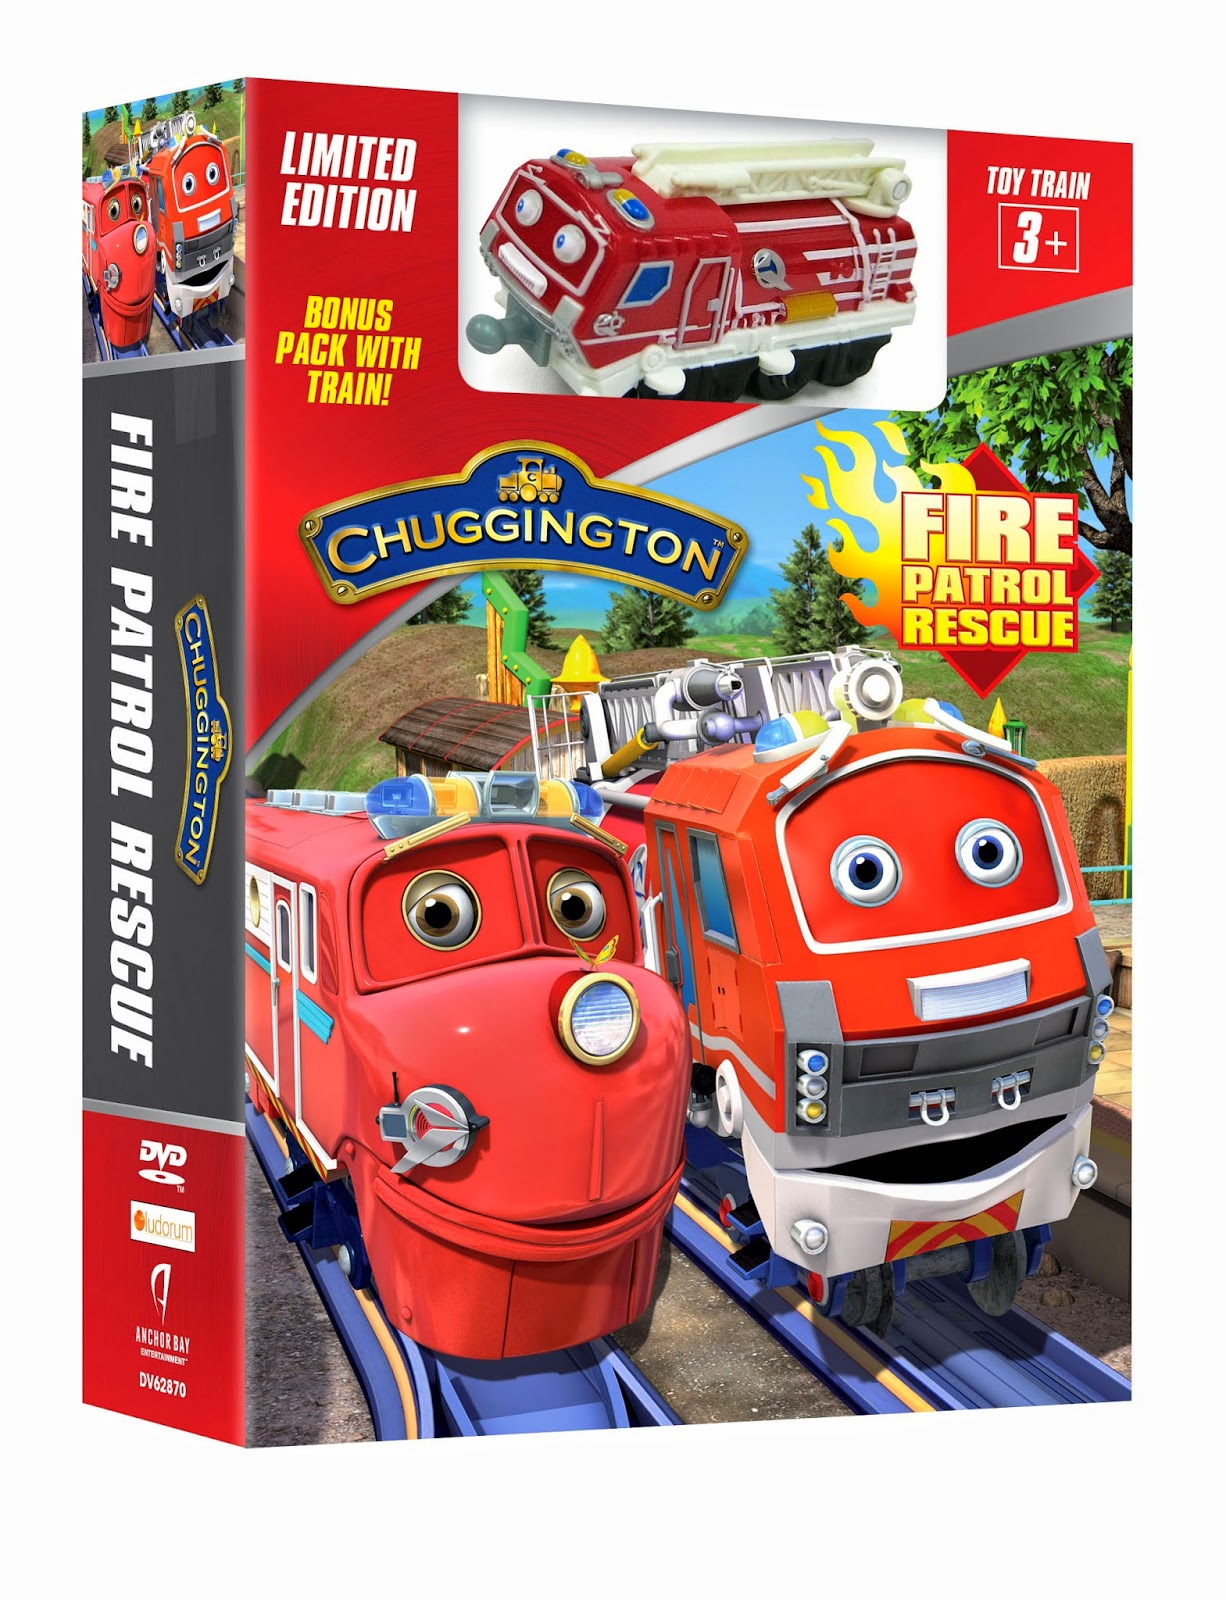 Its Chuggington Fire Patrol Rescue Day